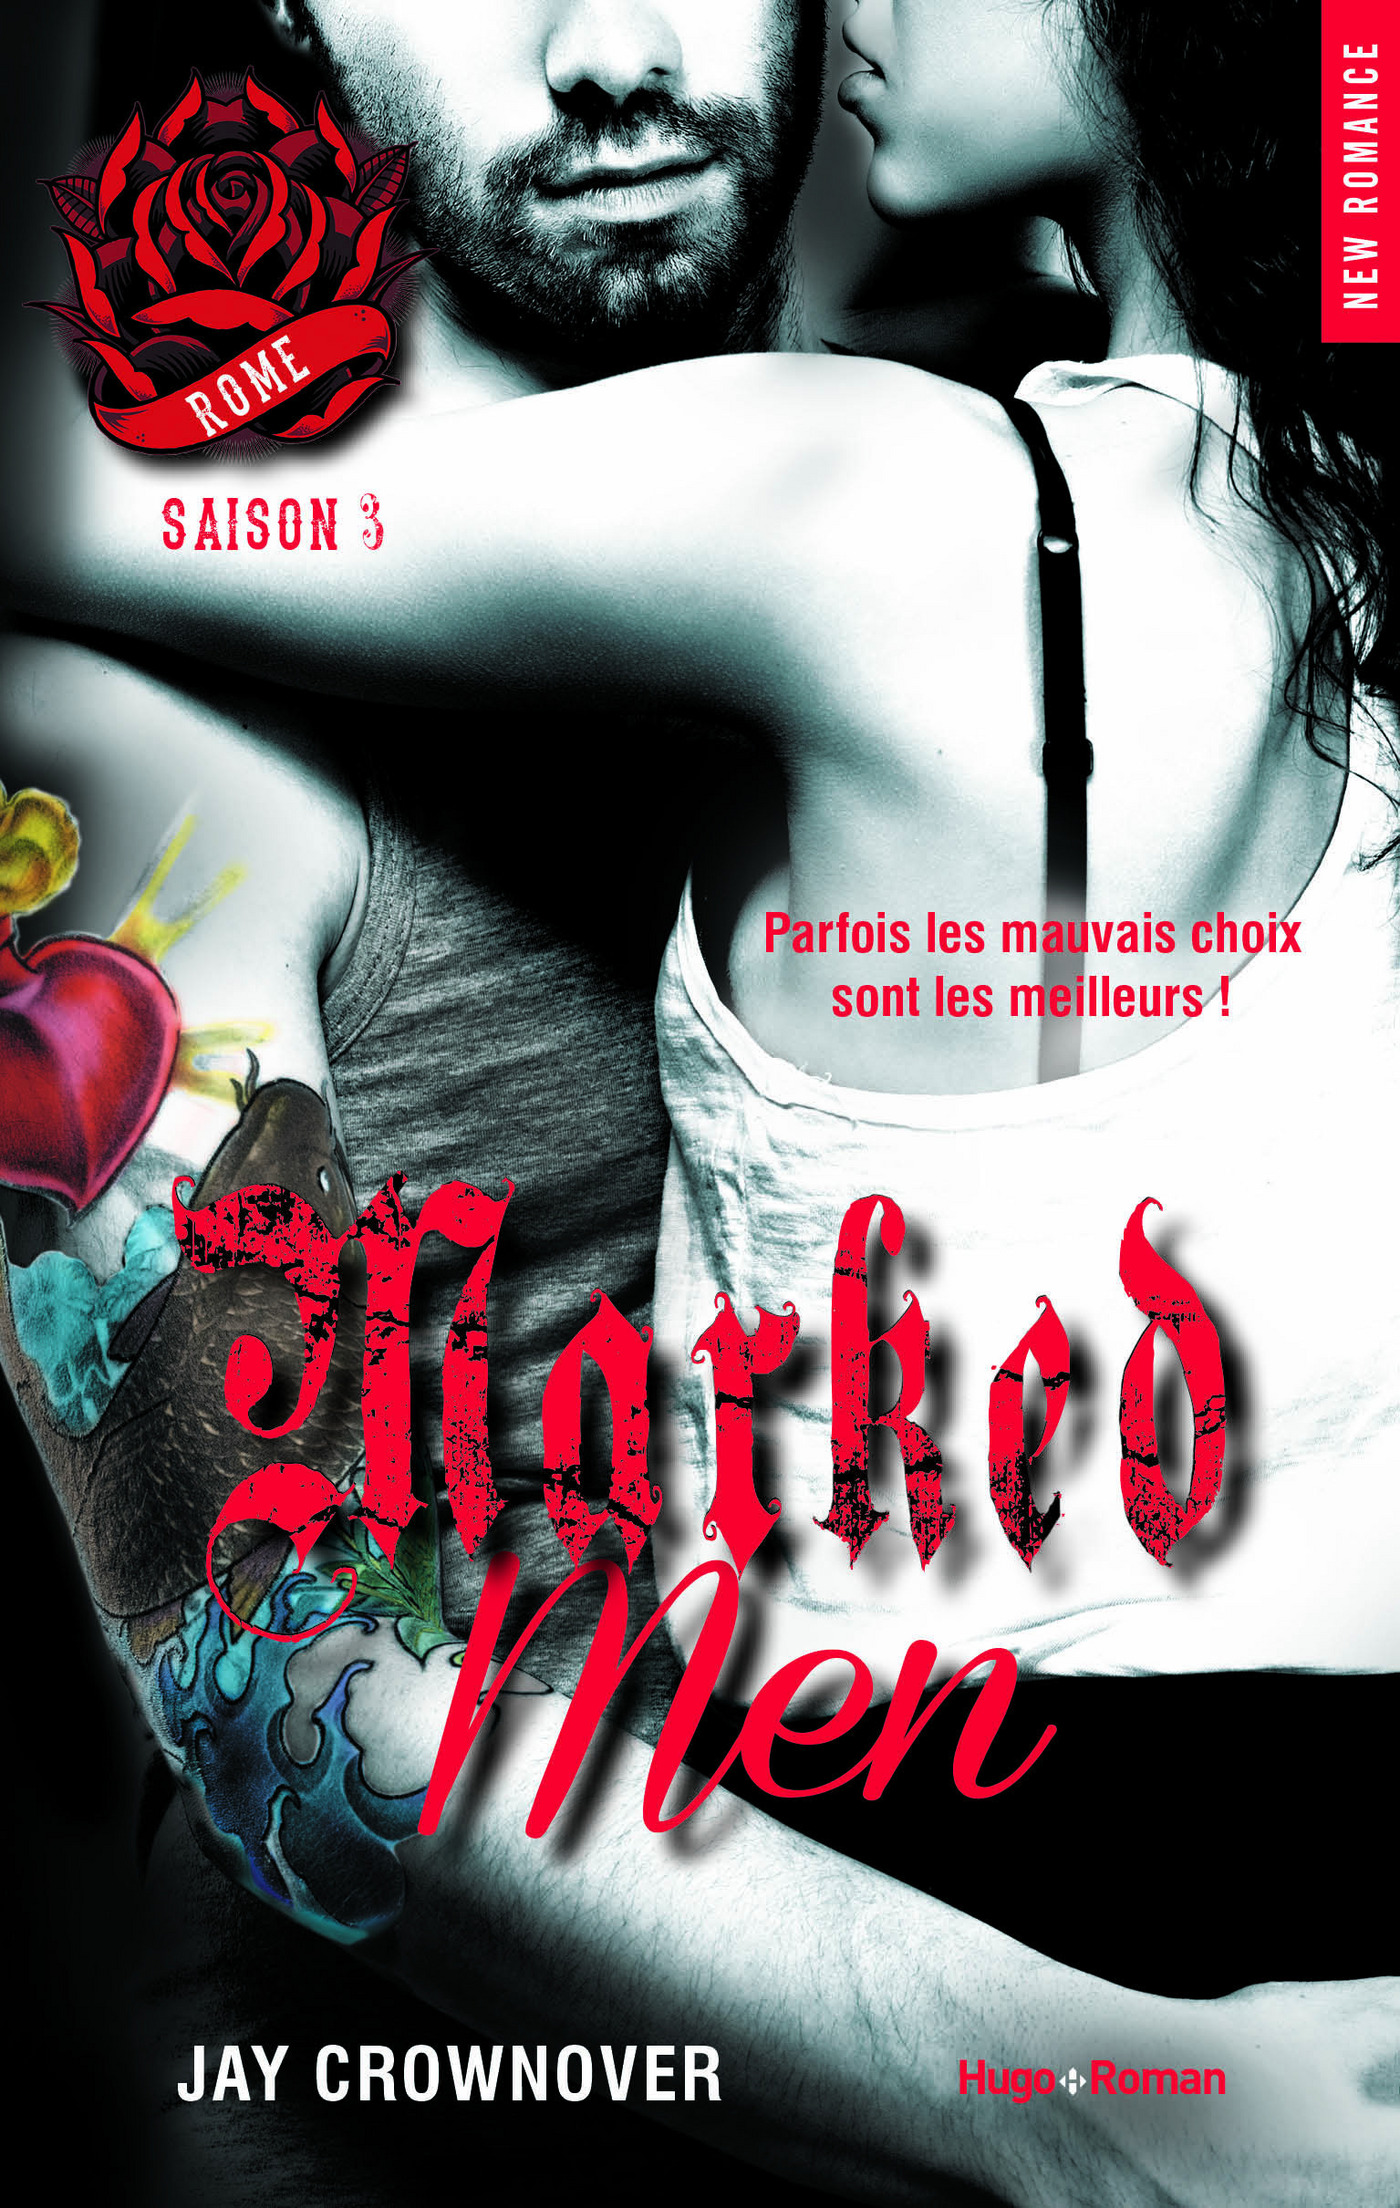 Marked Men Saison 3 Rome -Extrait offert-